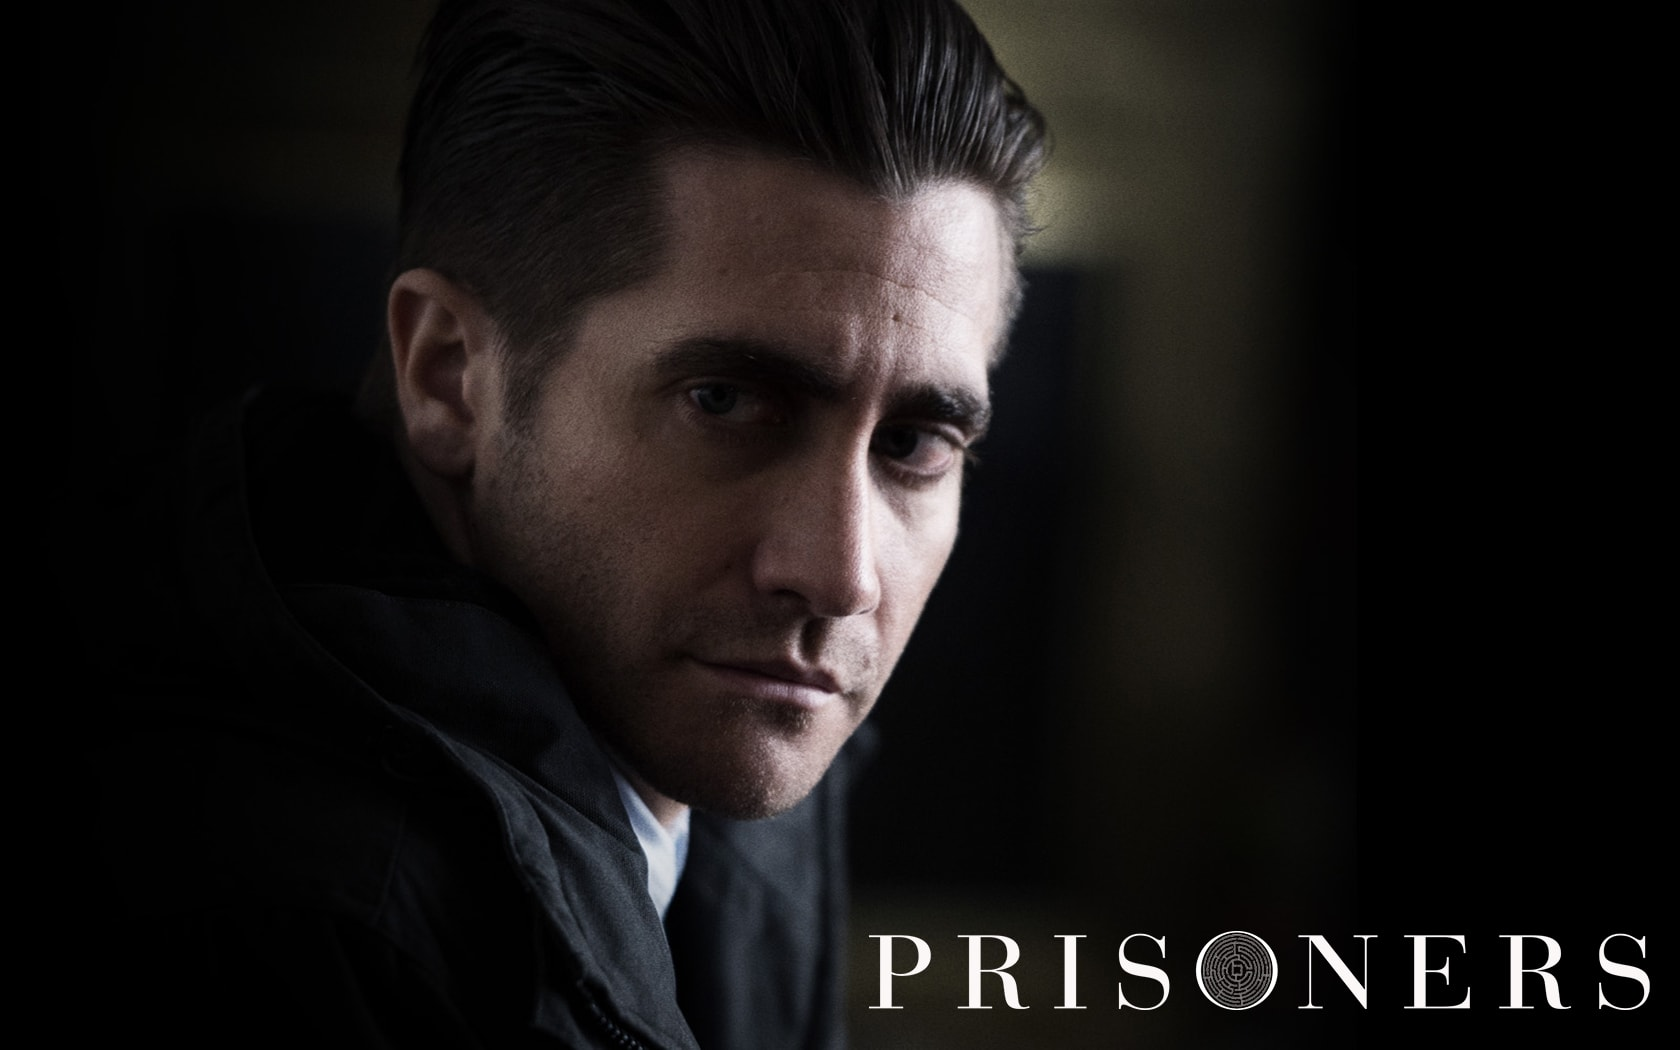 Prisoners Movie HQ wallpapers